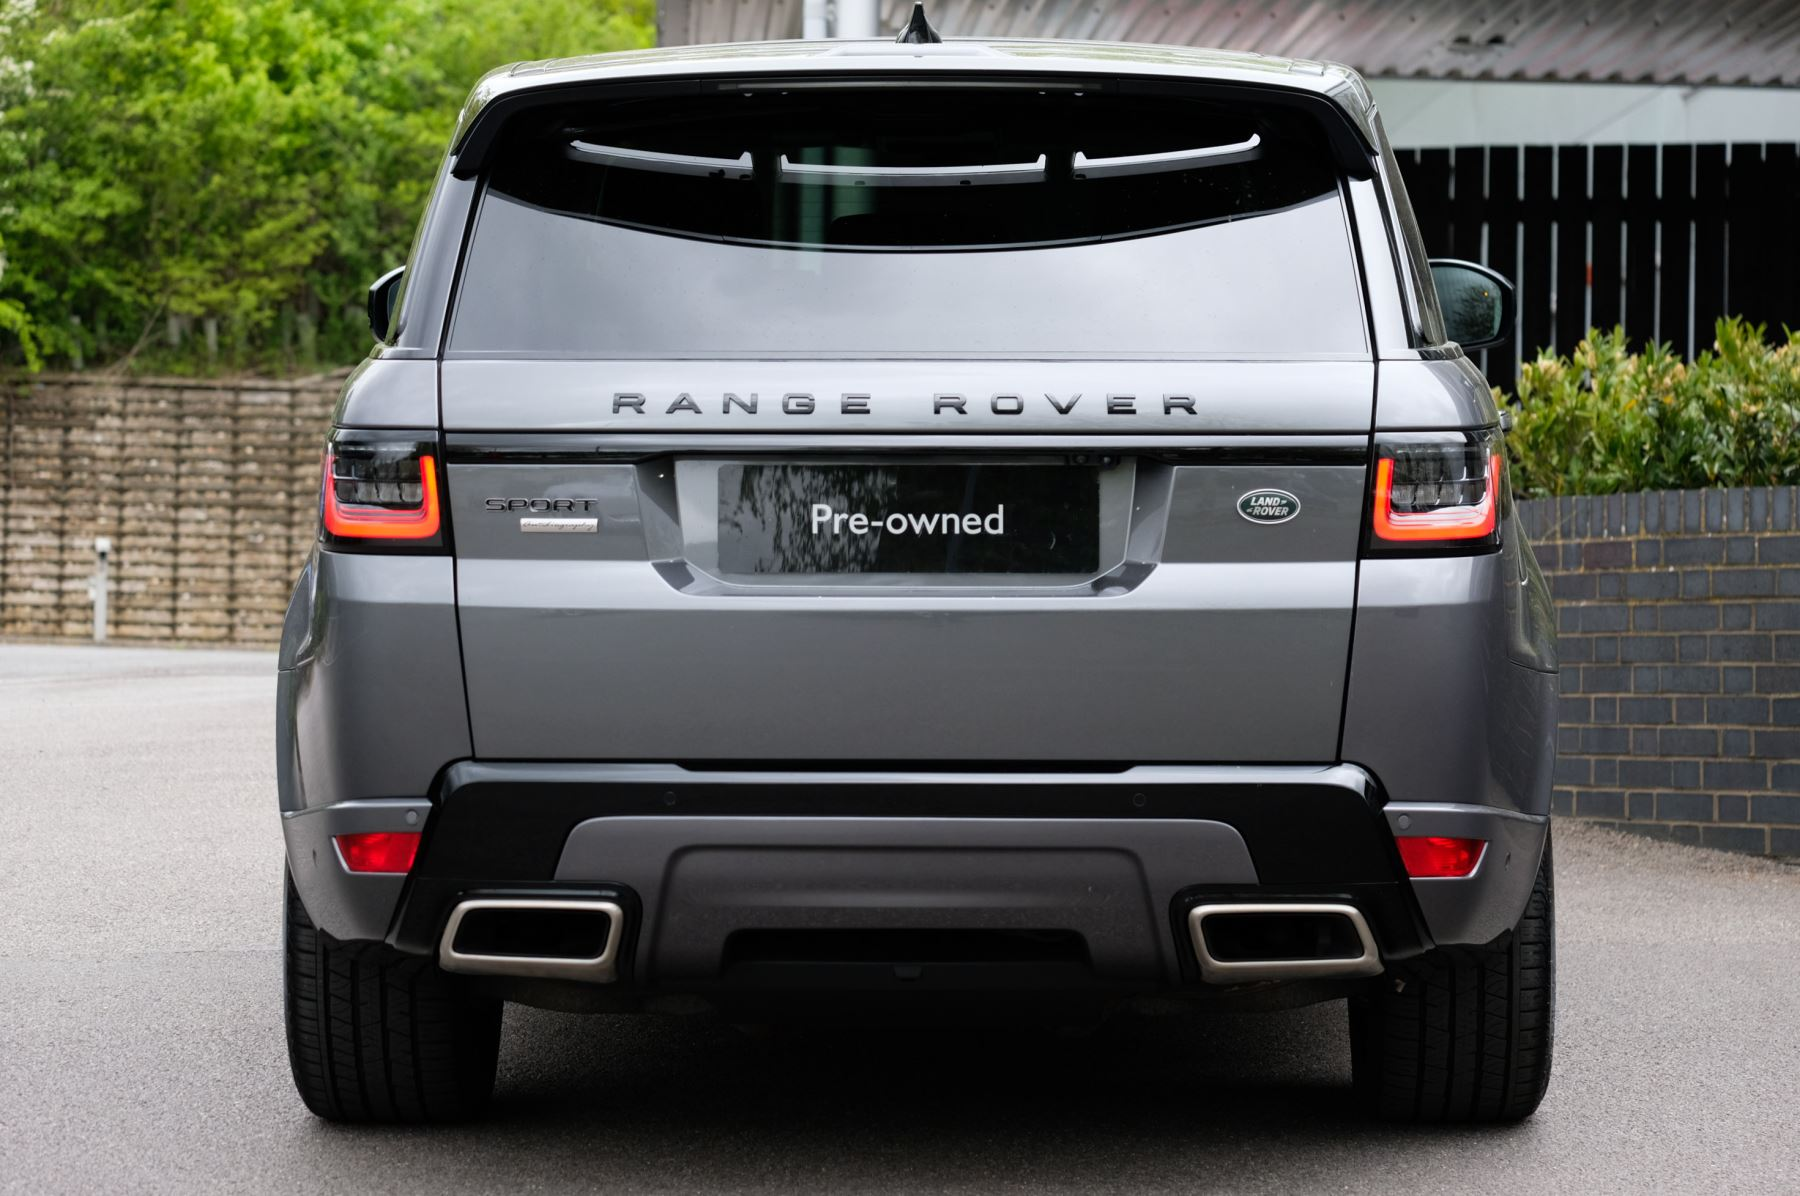 Land Rover Range Rover Sport 3.0 SDV6 Autobiography Dynamic 5dr [7 Seat] - Rear Seat Entertainment - 21 Inch Alloys image 7